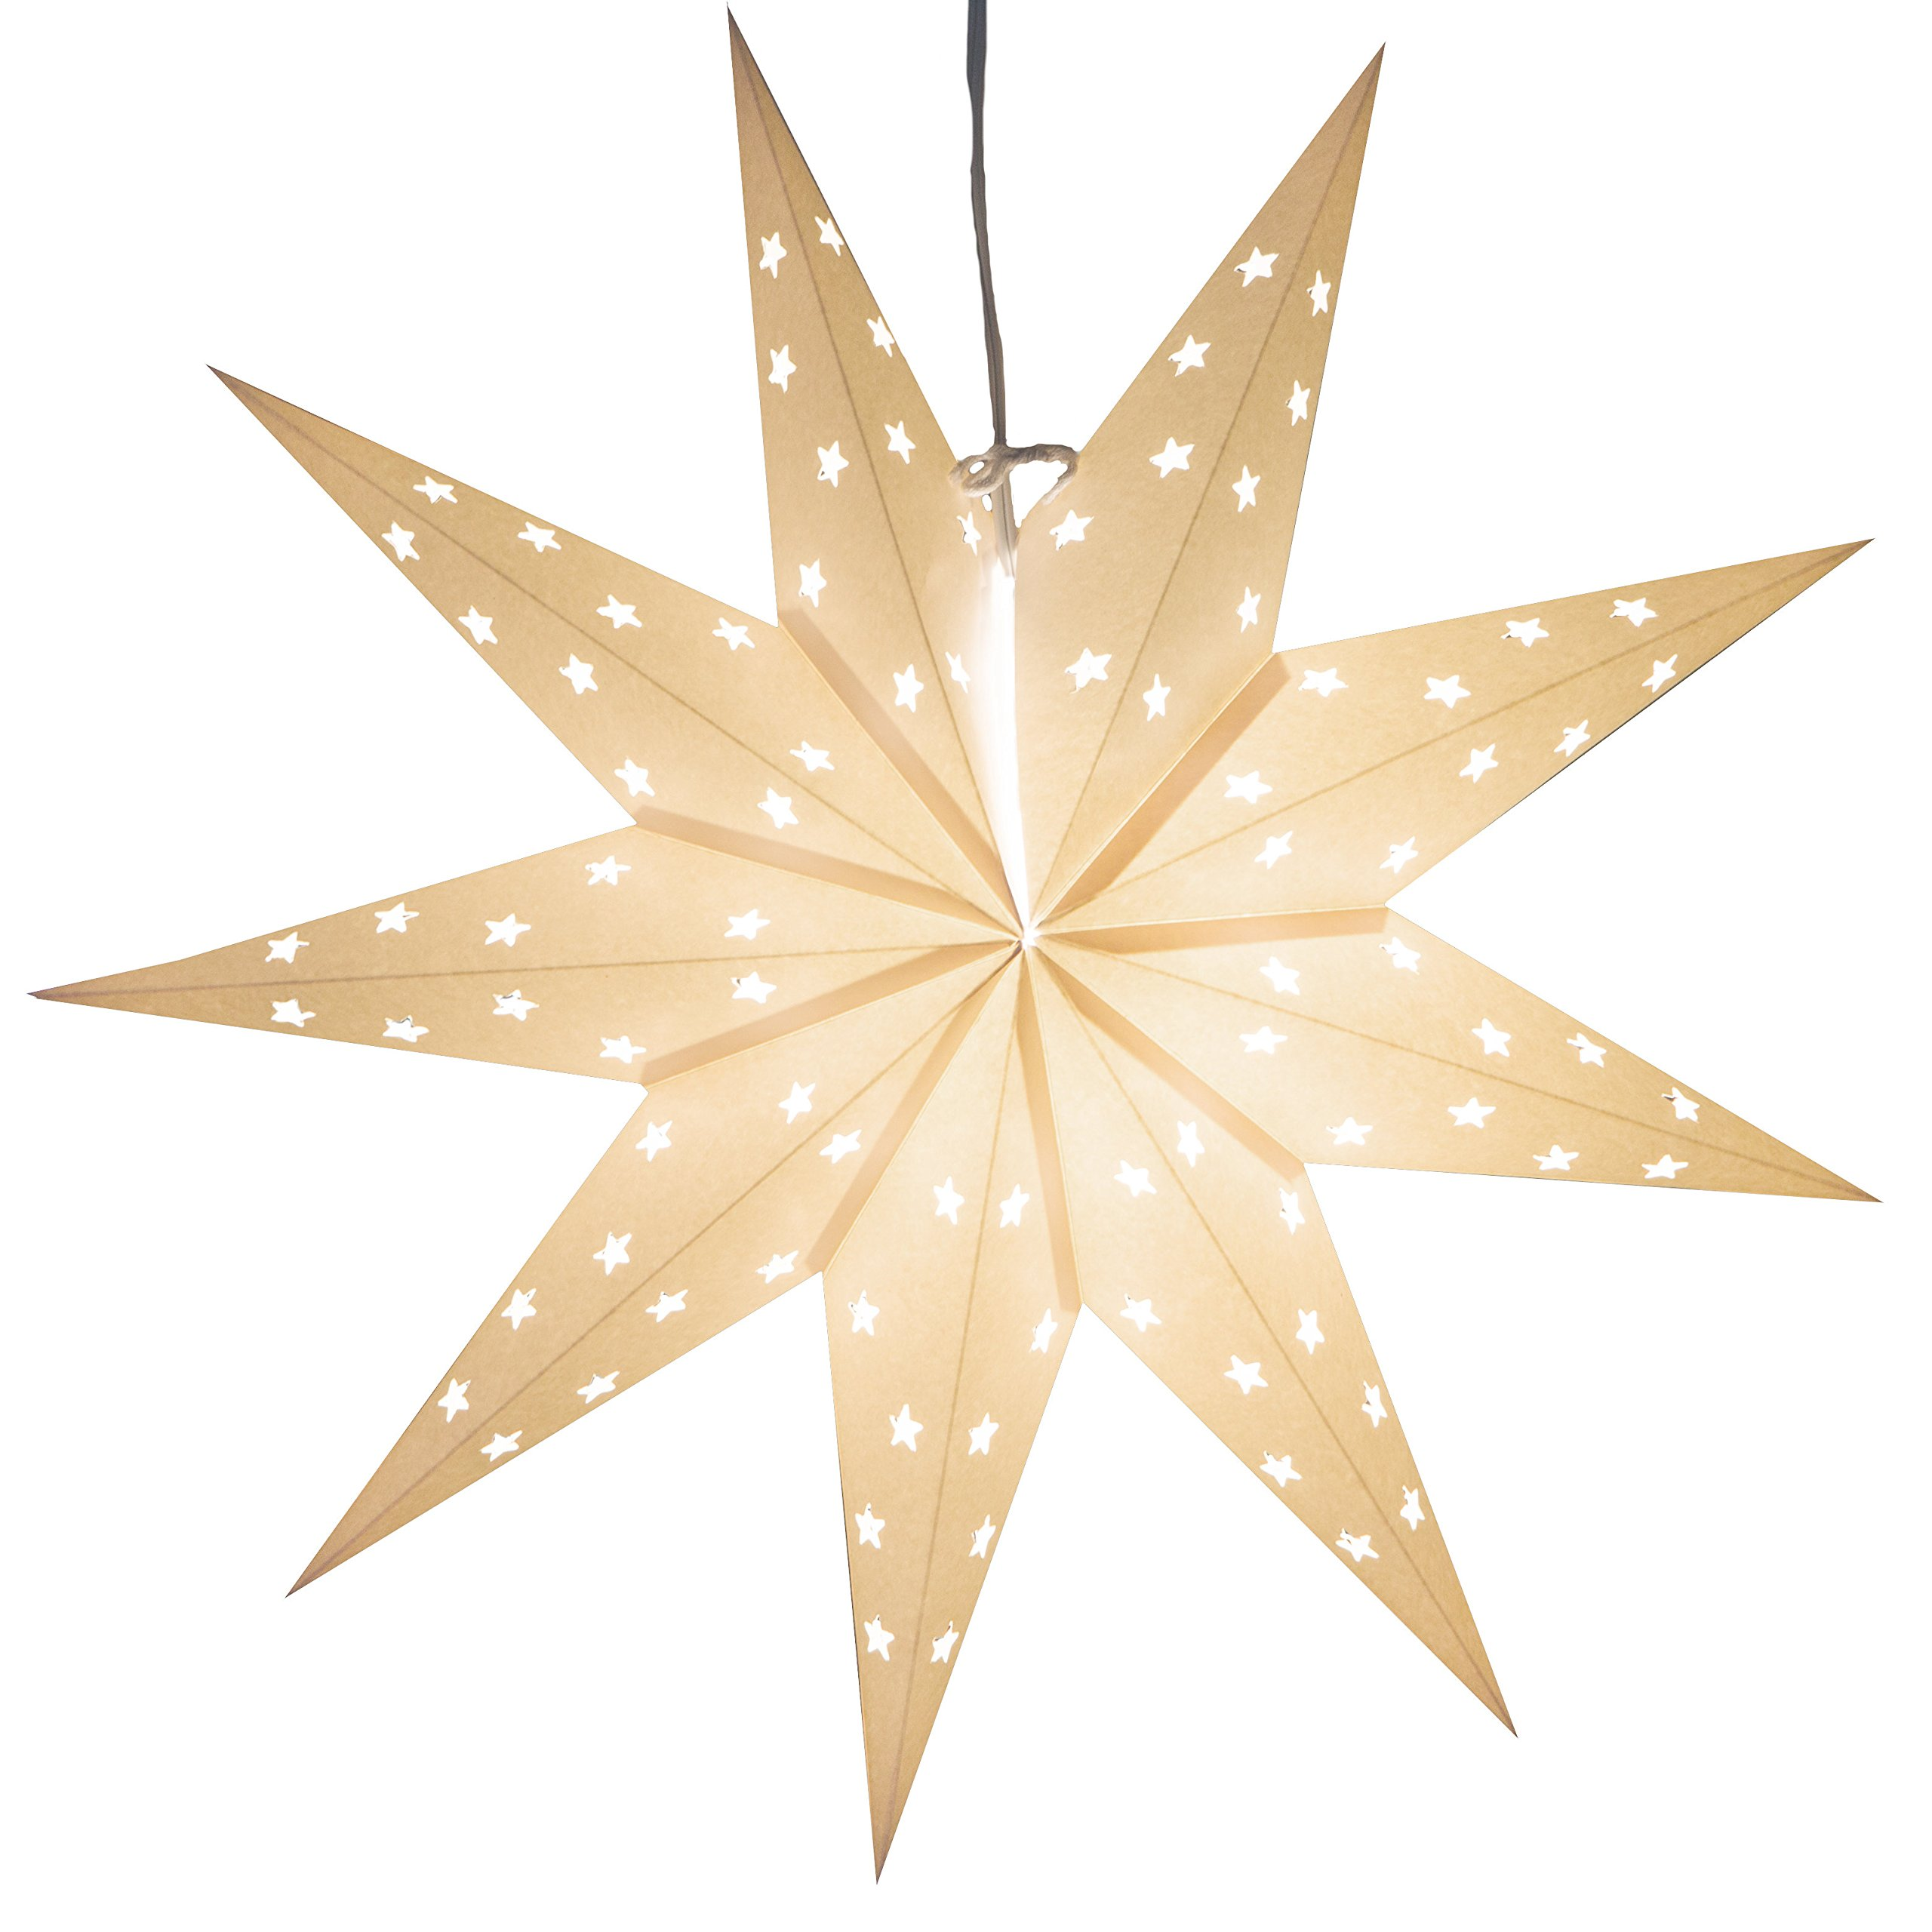 9 Pointed White Paper Star Light with 12 Foot Power Cord Included